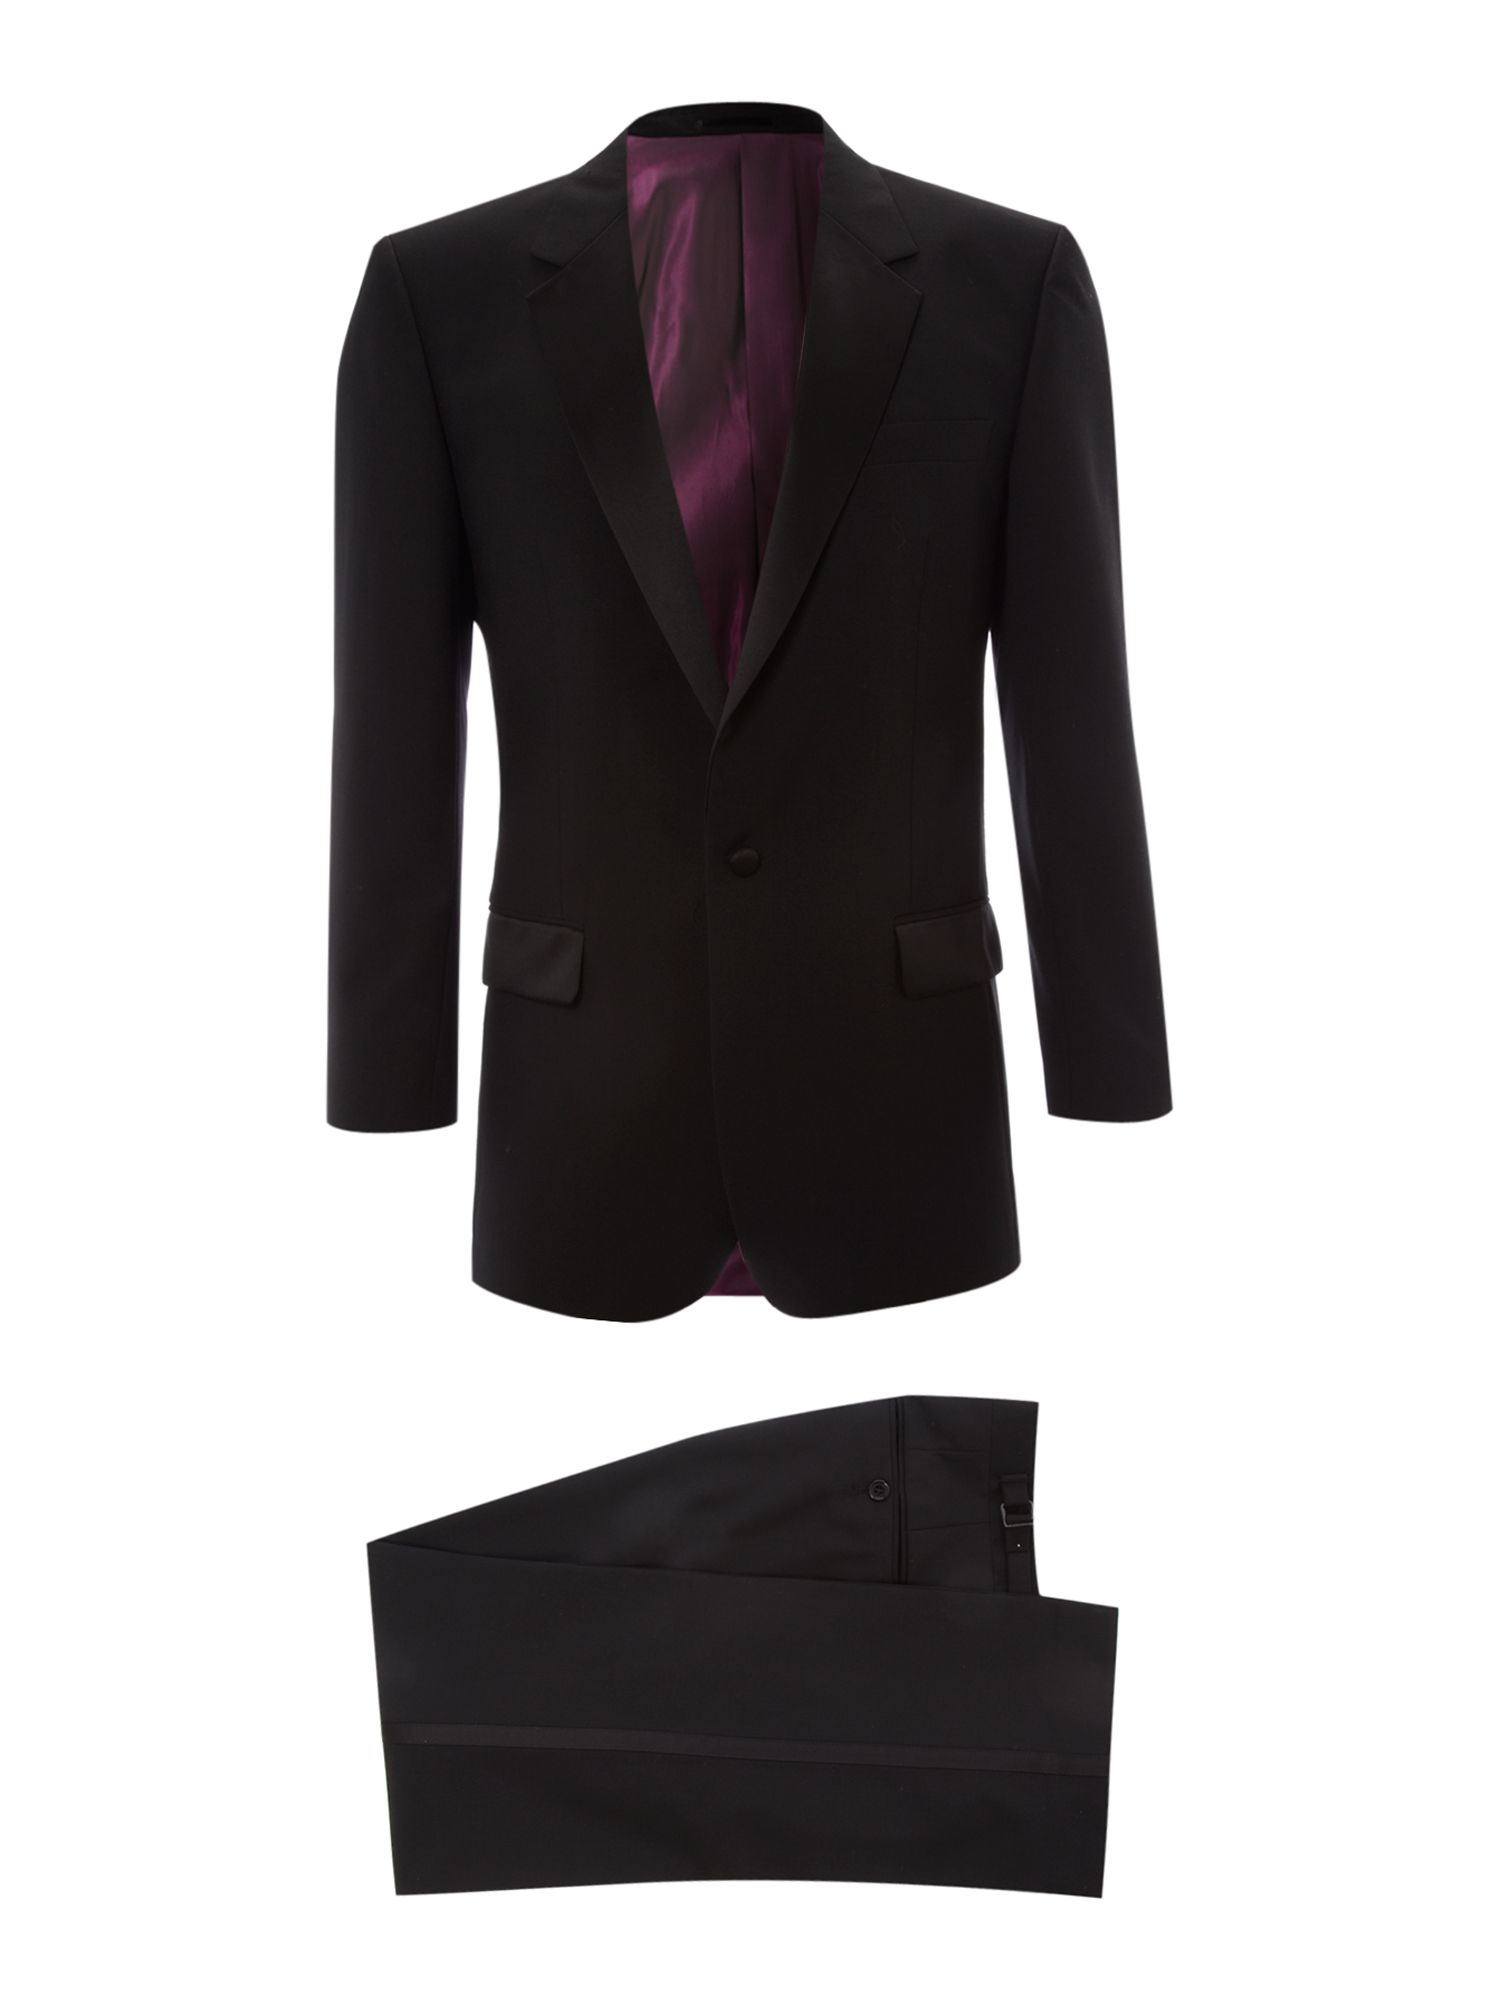 Chatsworth dinner suit